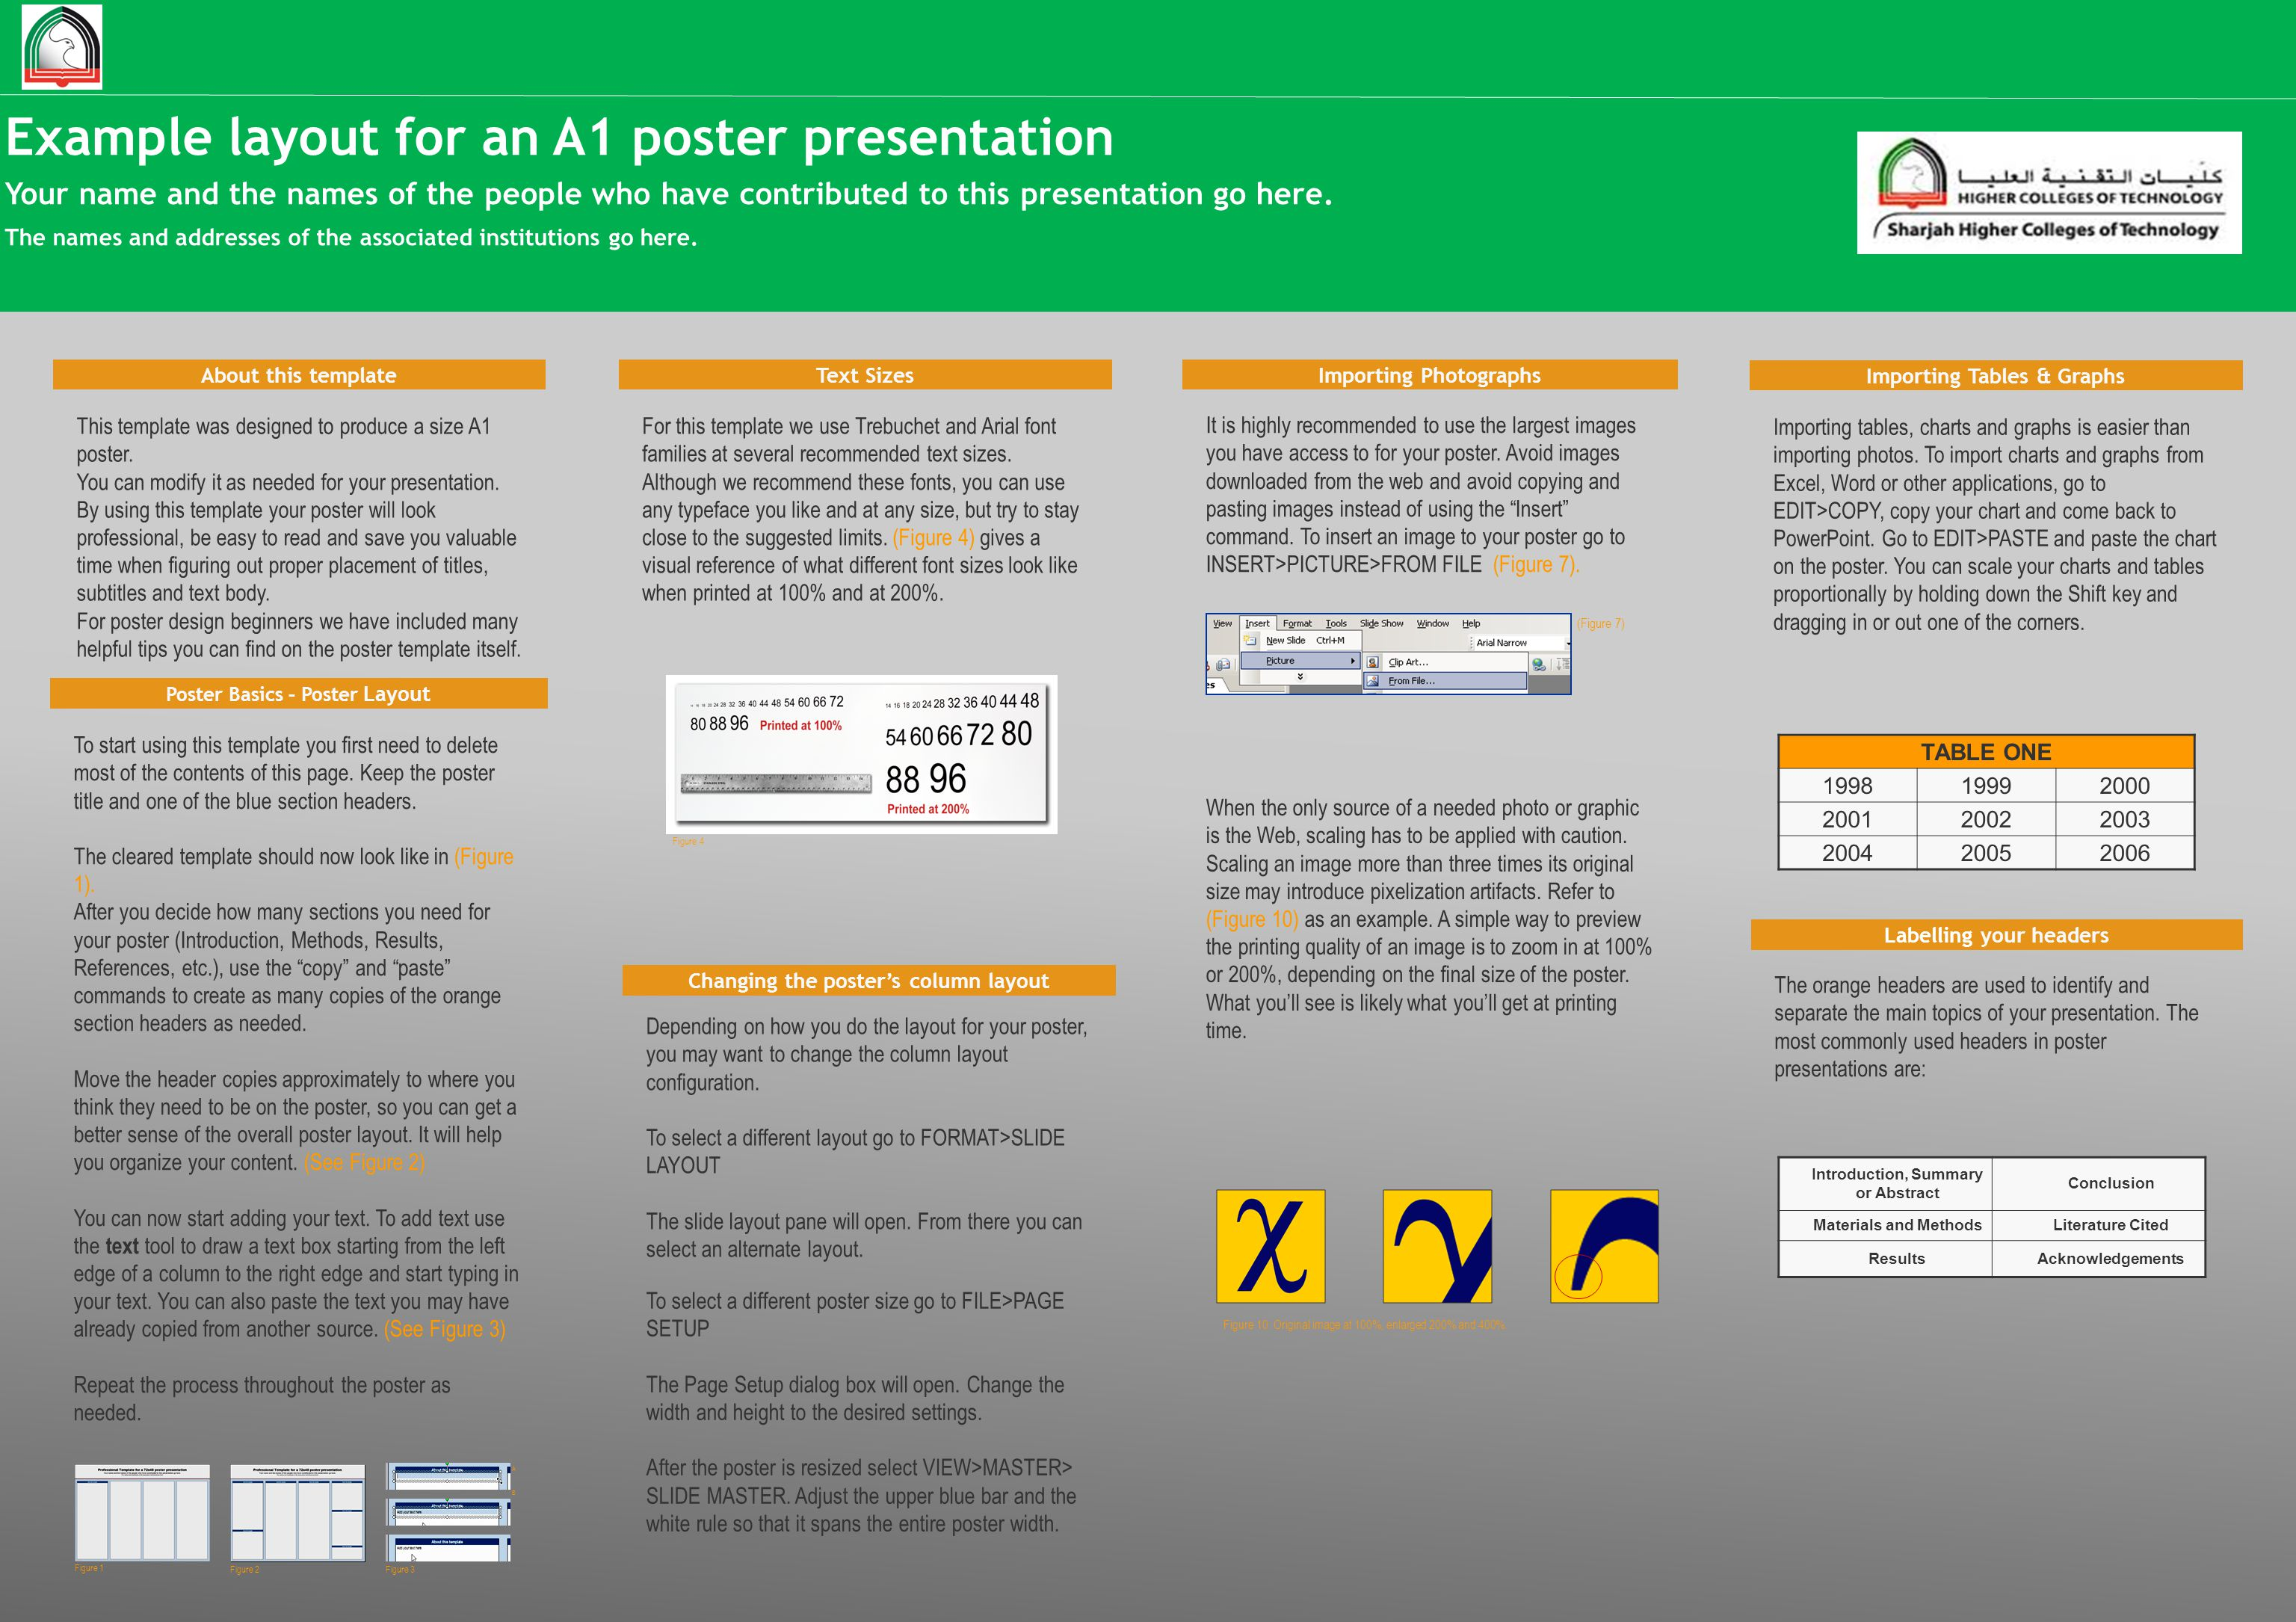 Example Layout For An A1 Poster Presentation Ppt Download